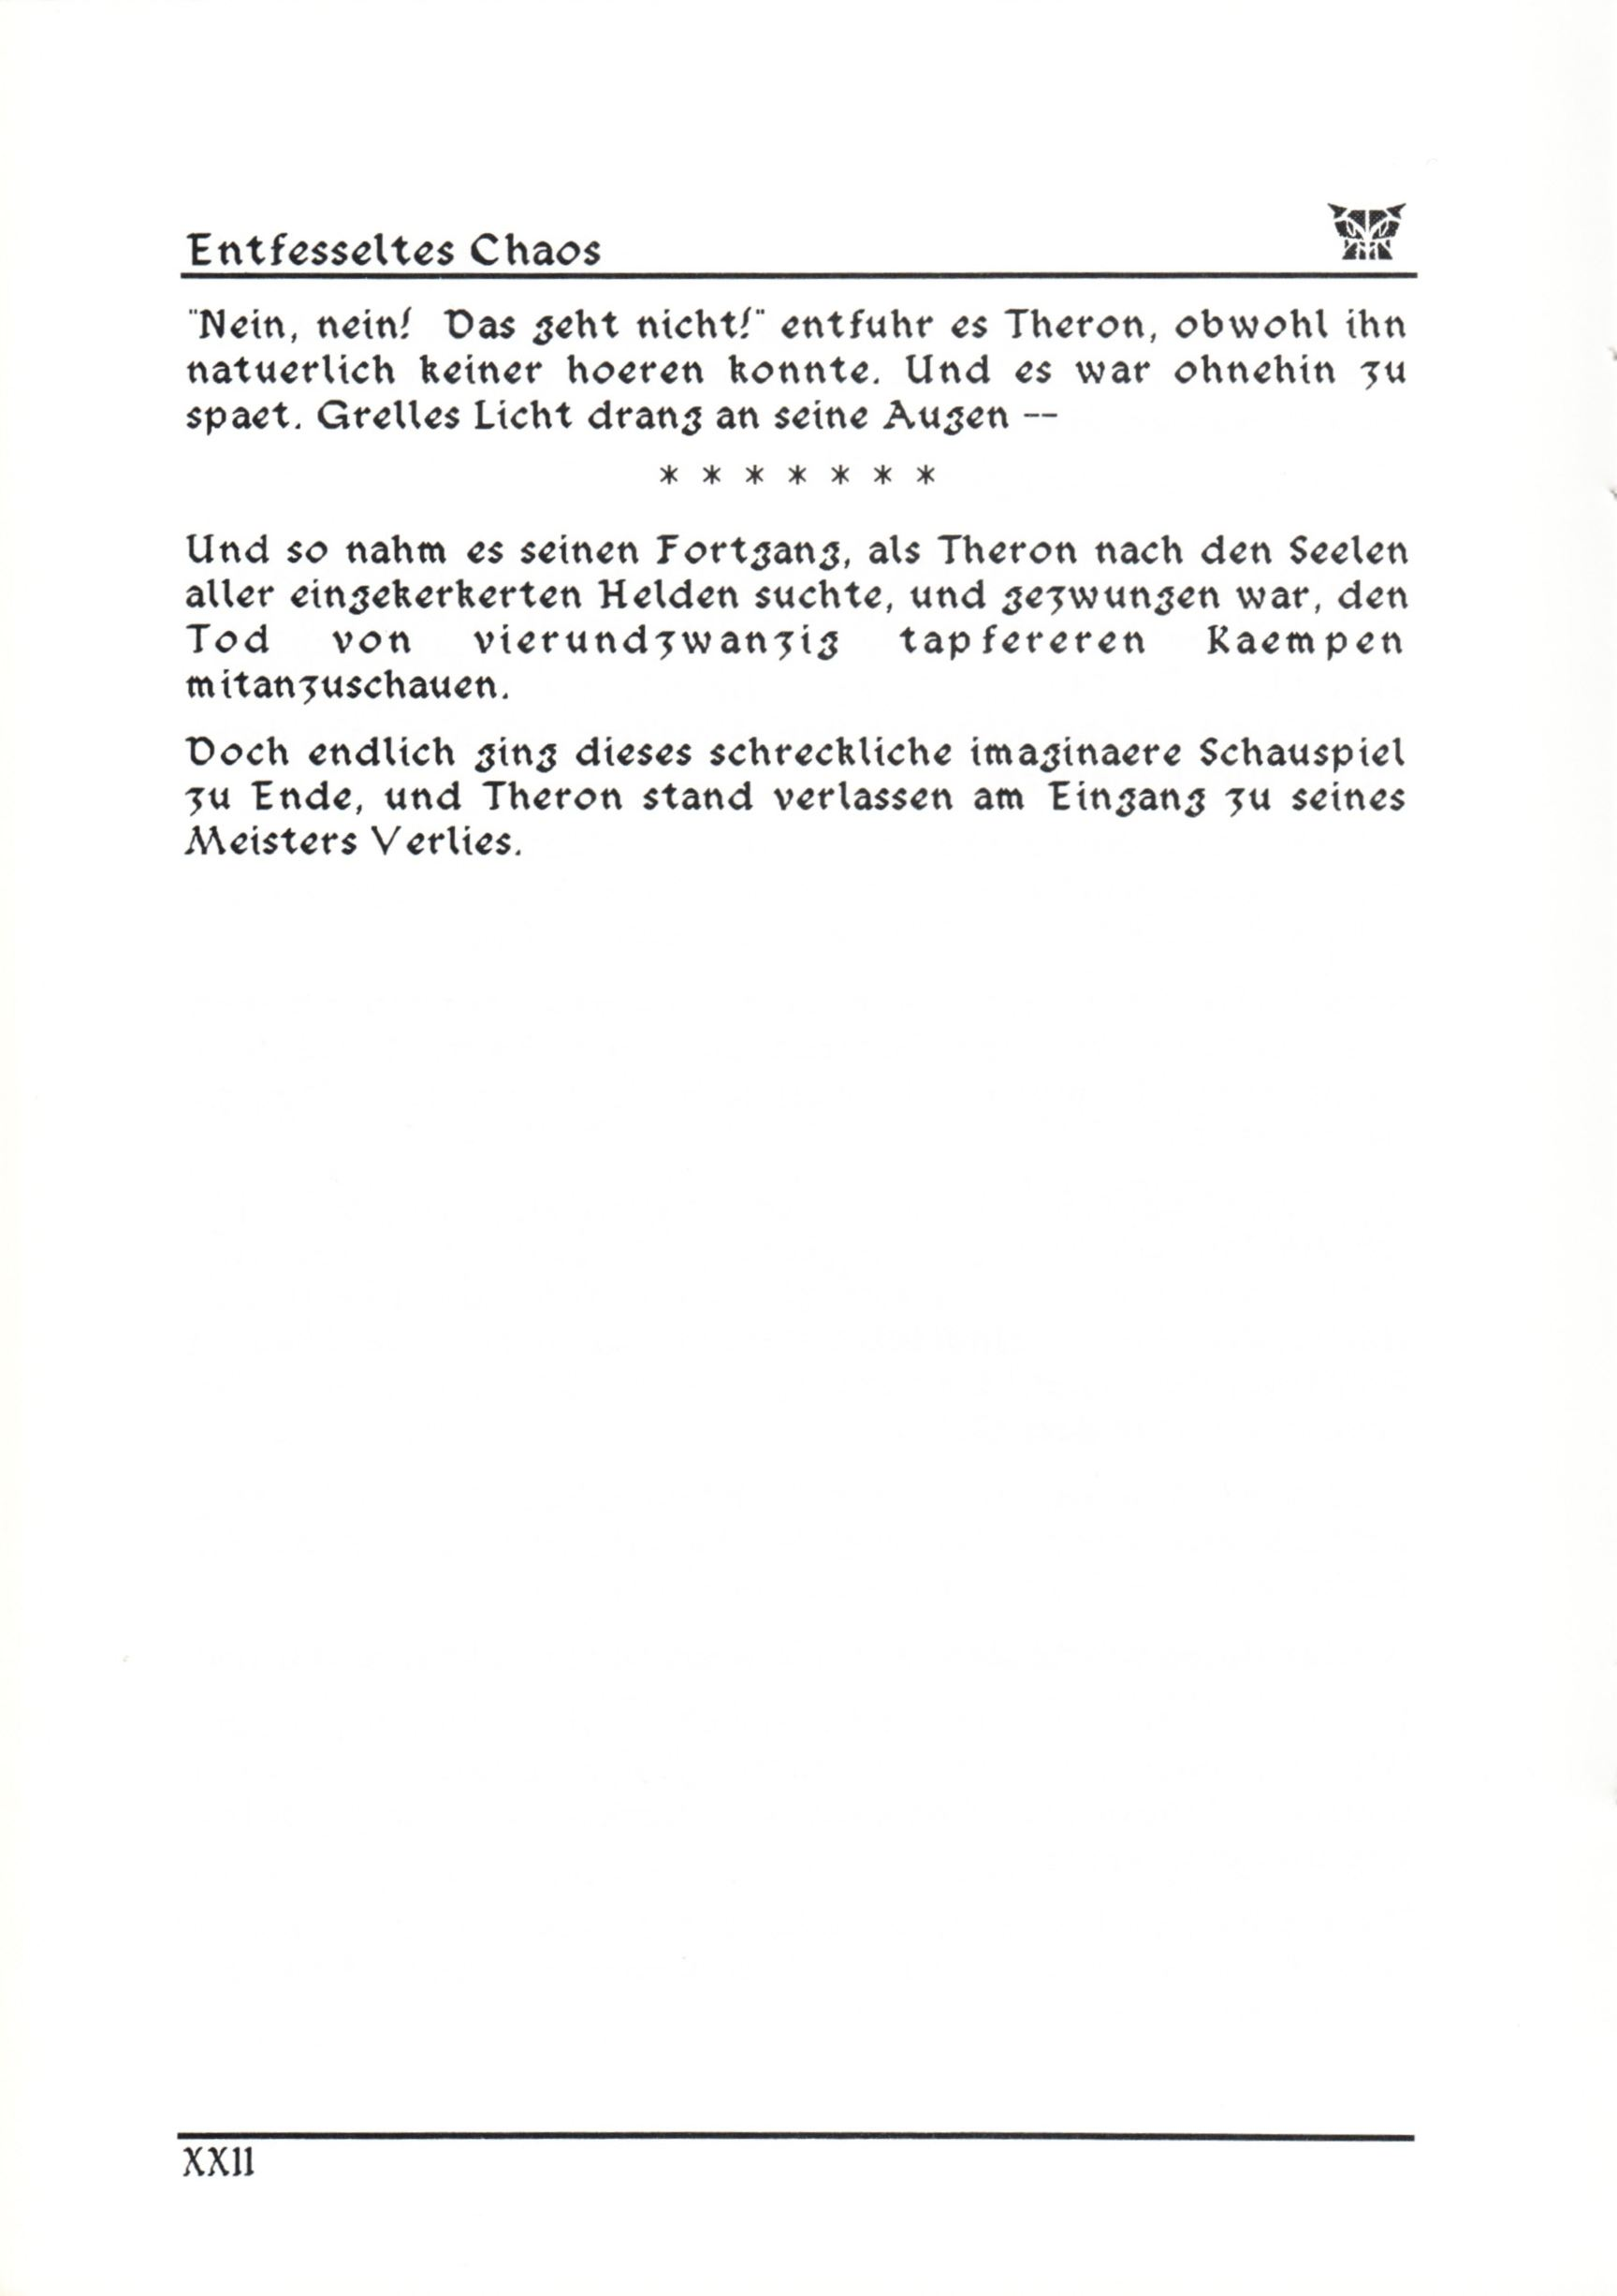 Game - Dungeon Master - DE - PC - Psygnosis - Manual - Page 026 - Scan